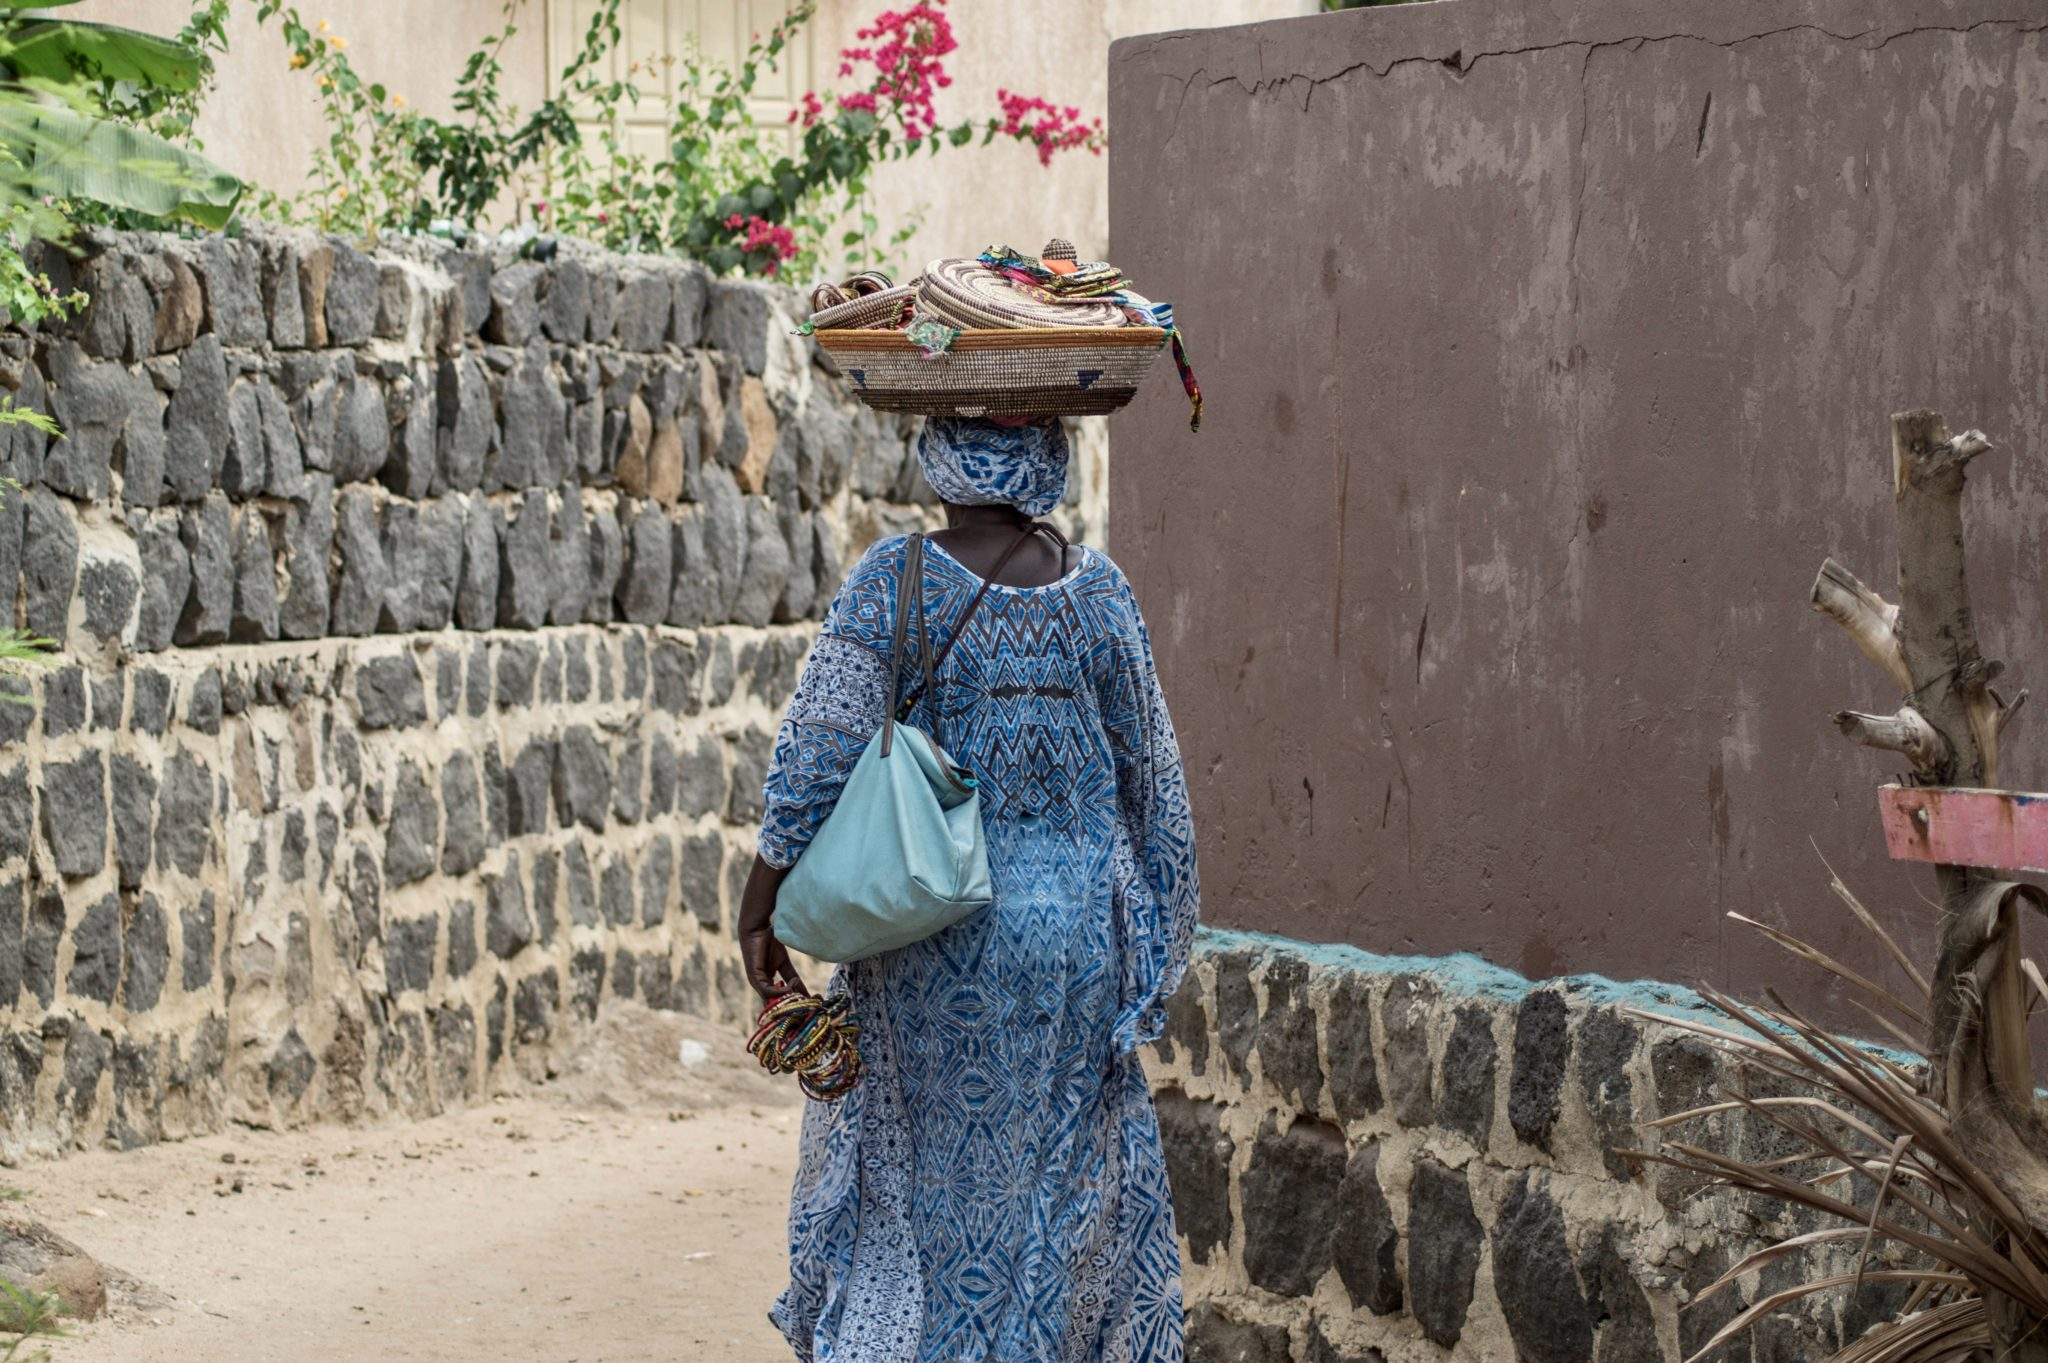 Senegal Surf: This lady sells handmade baskets on Ngor Island